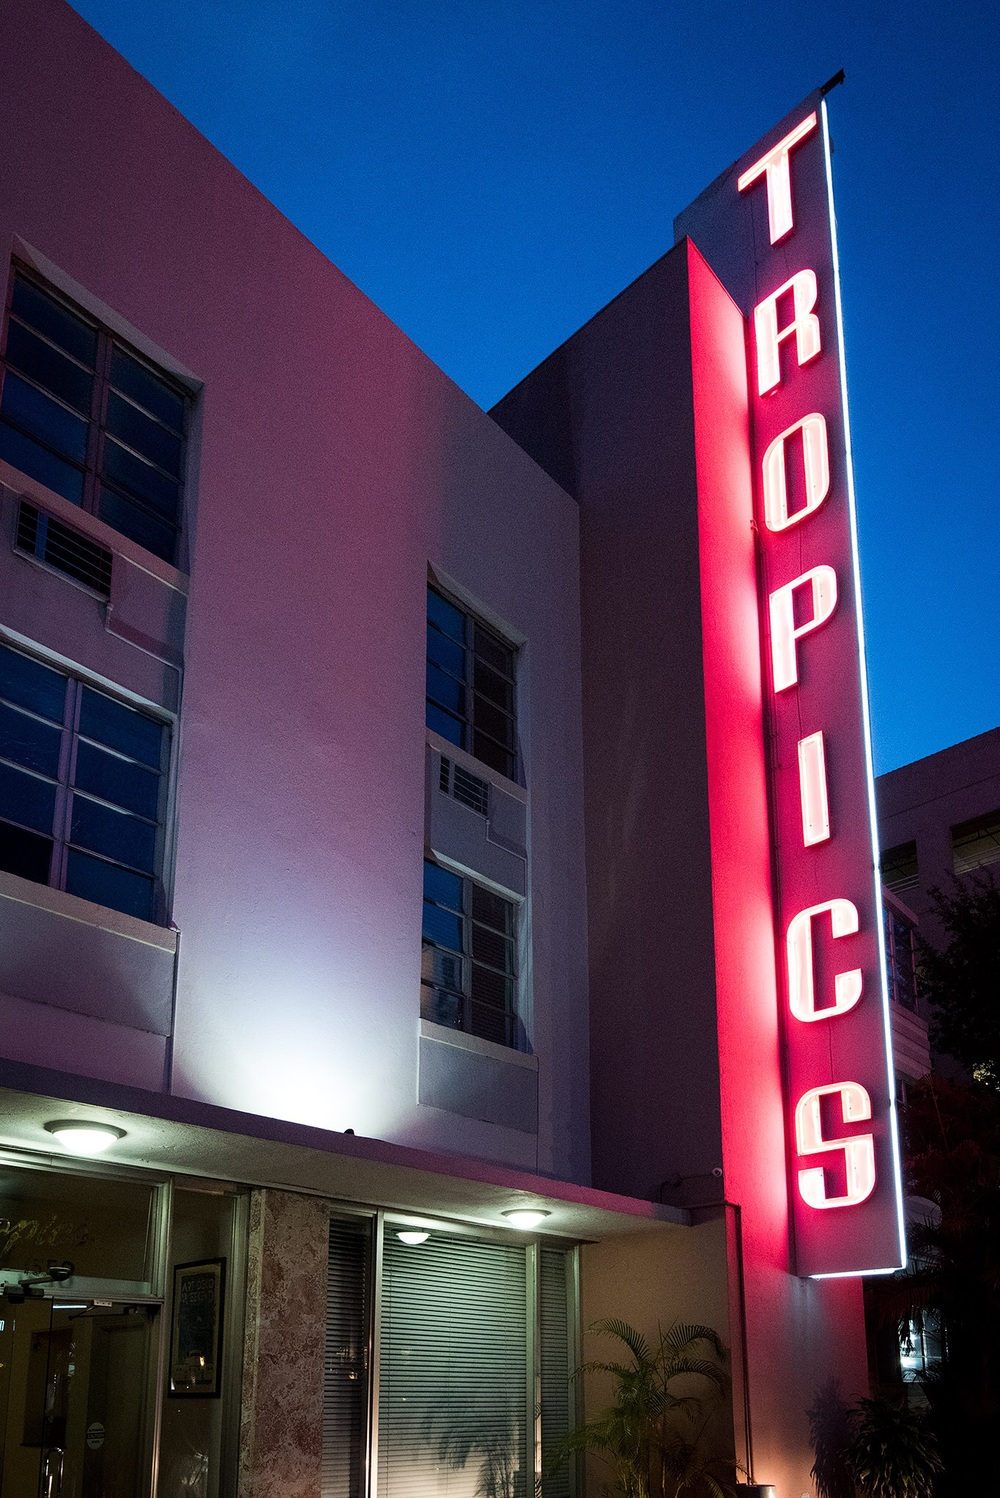 Plenty of colorful neon decorates the Art Deco buildings in South Beach.